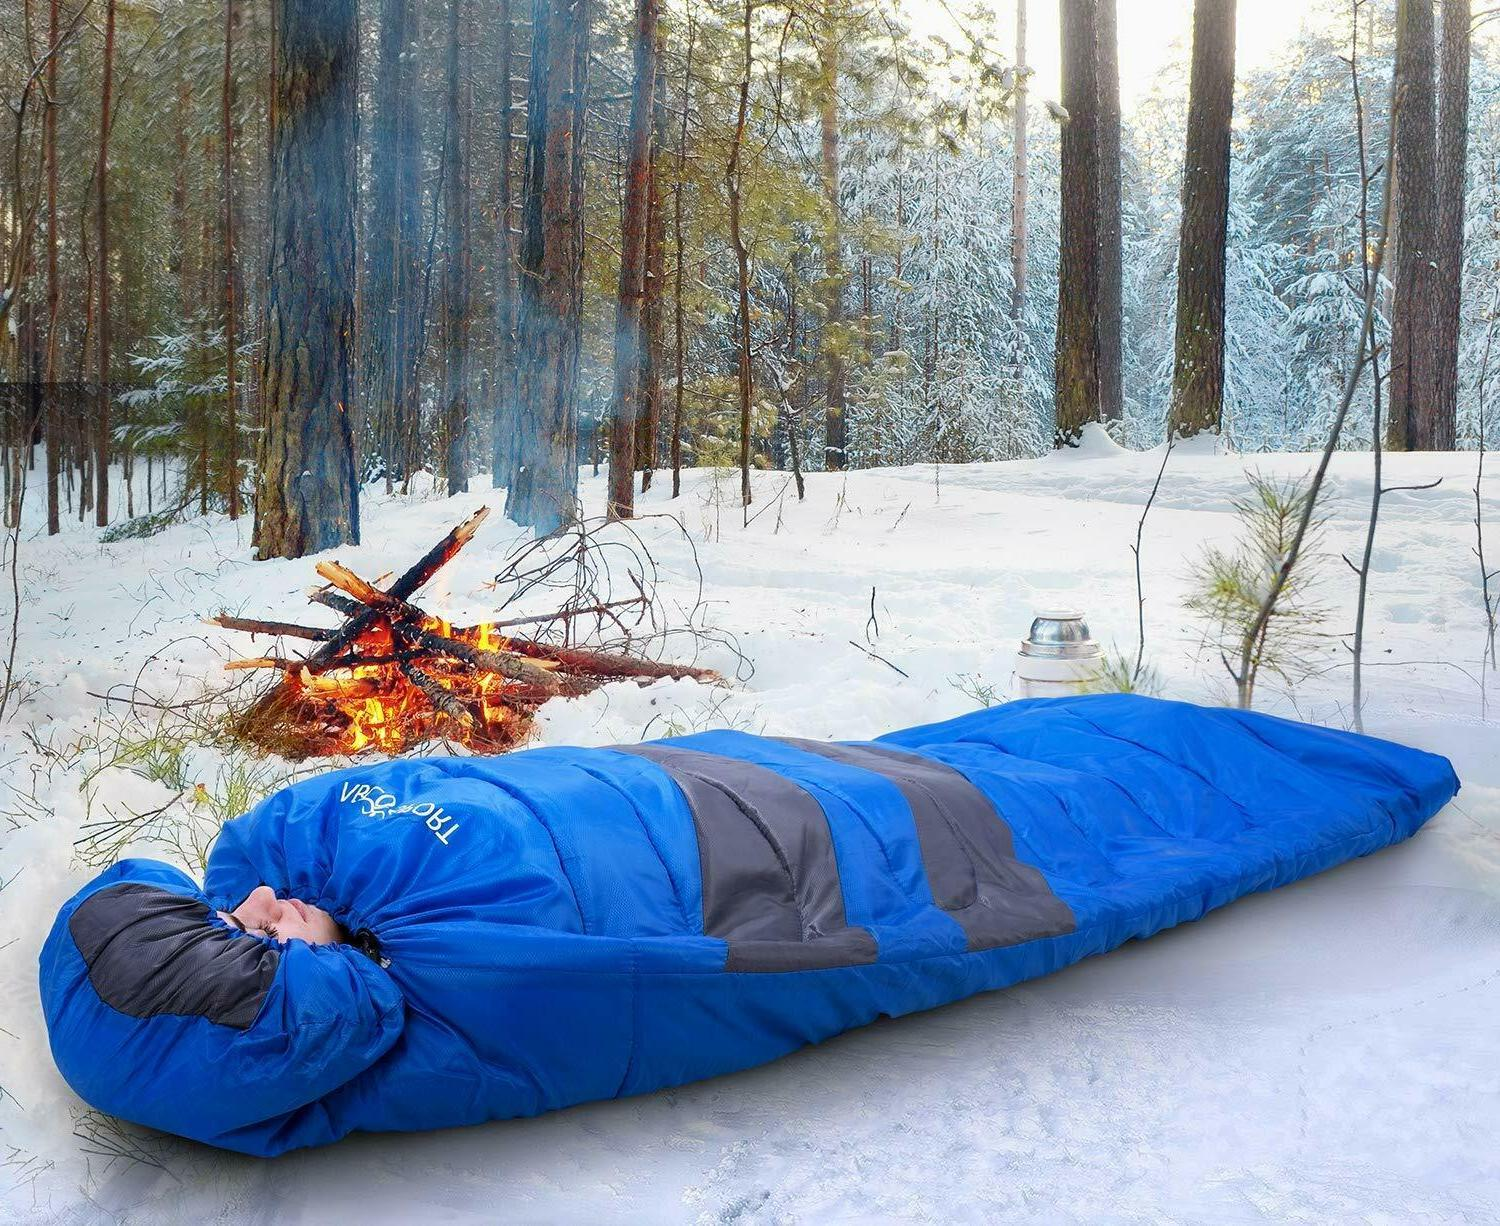 Sleeping Bag - Lightweight Portable, Waterproof, With Compression Great Traveling, Camping, Outdoor Activities.